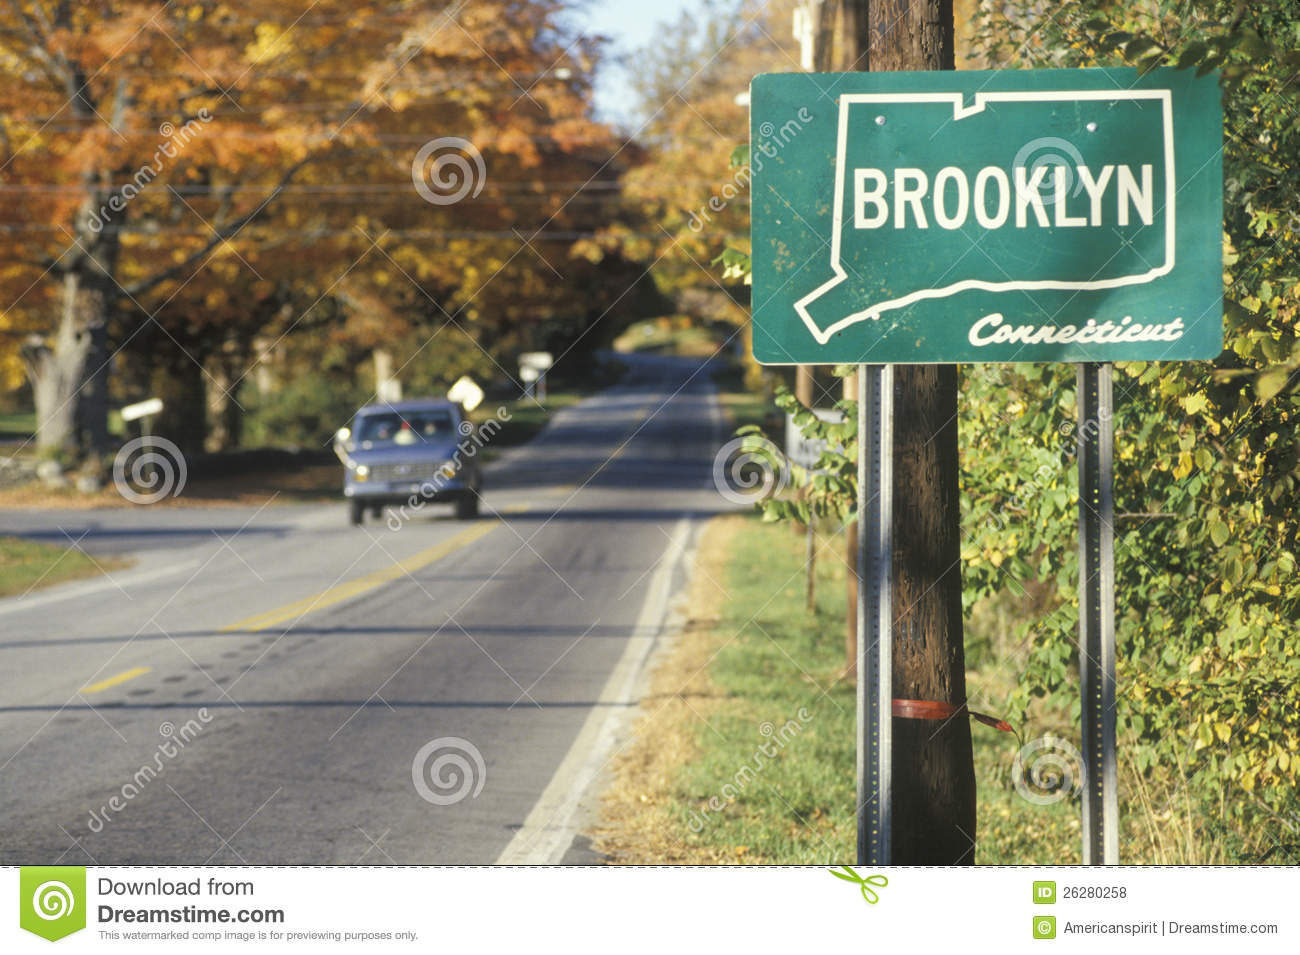 A sign for Brooklyn